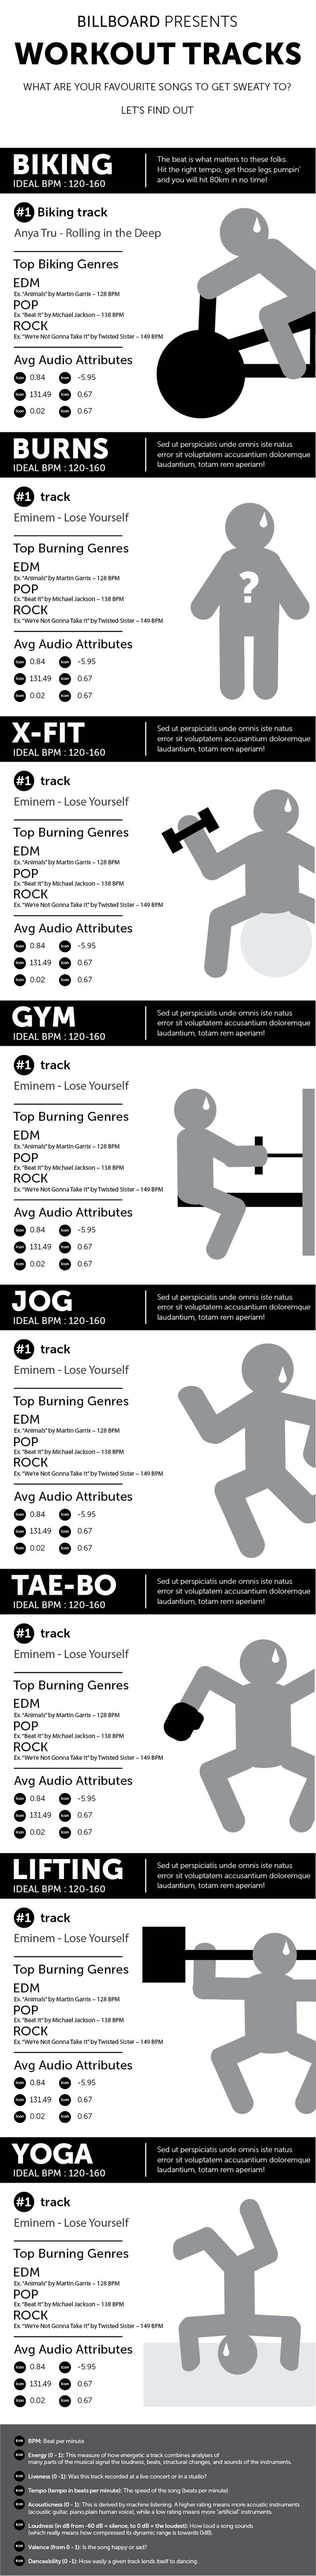 Exercise Playlist Infographic 5662